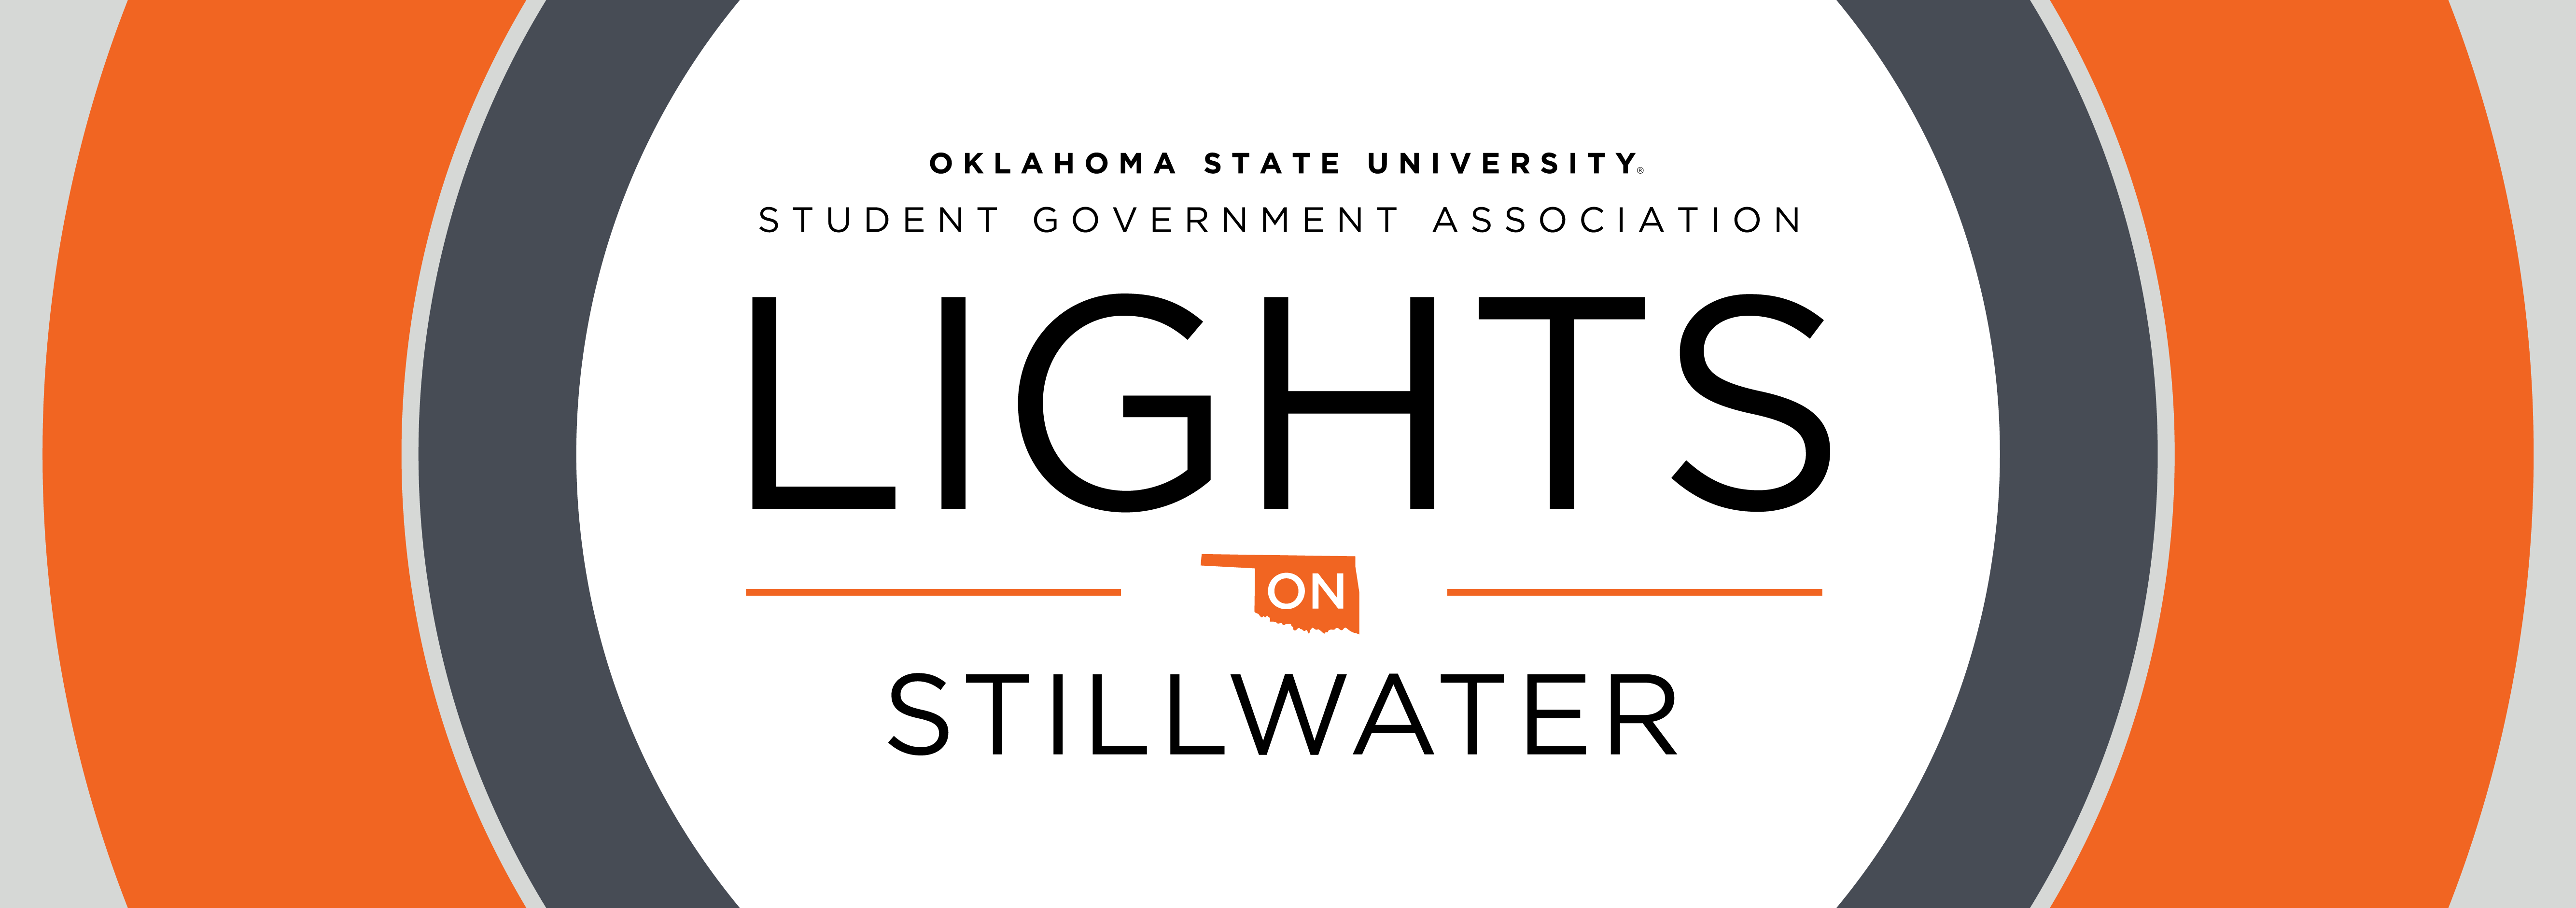 Lights on Stillwater 2020